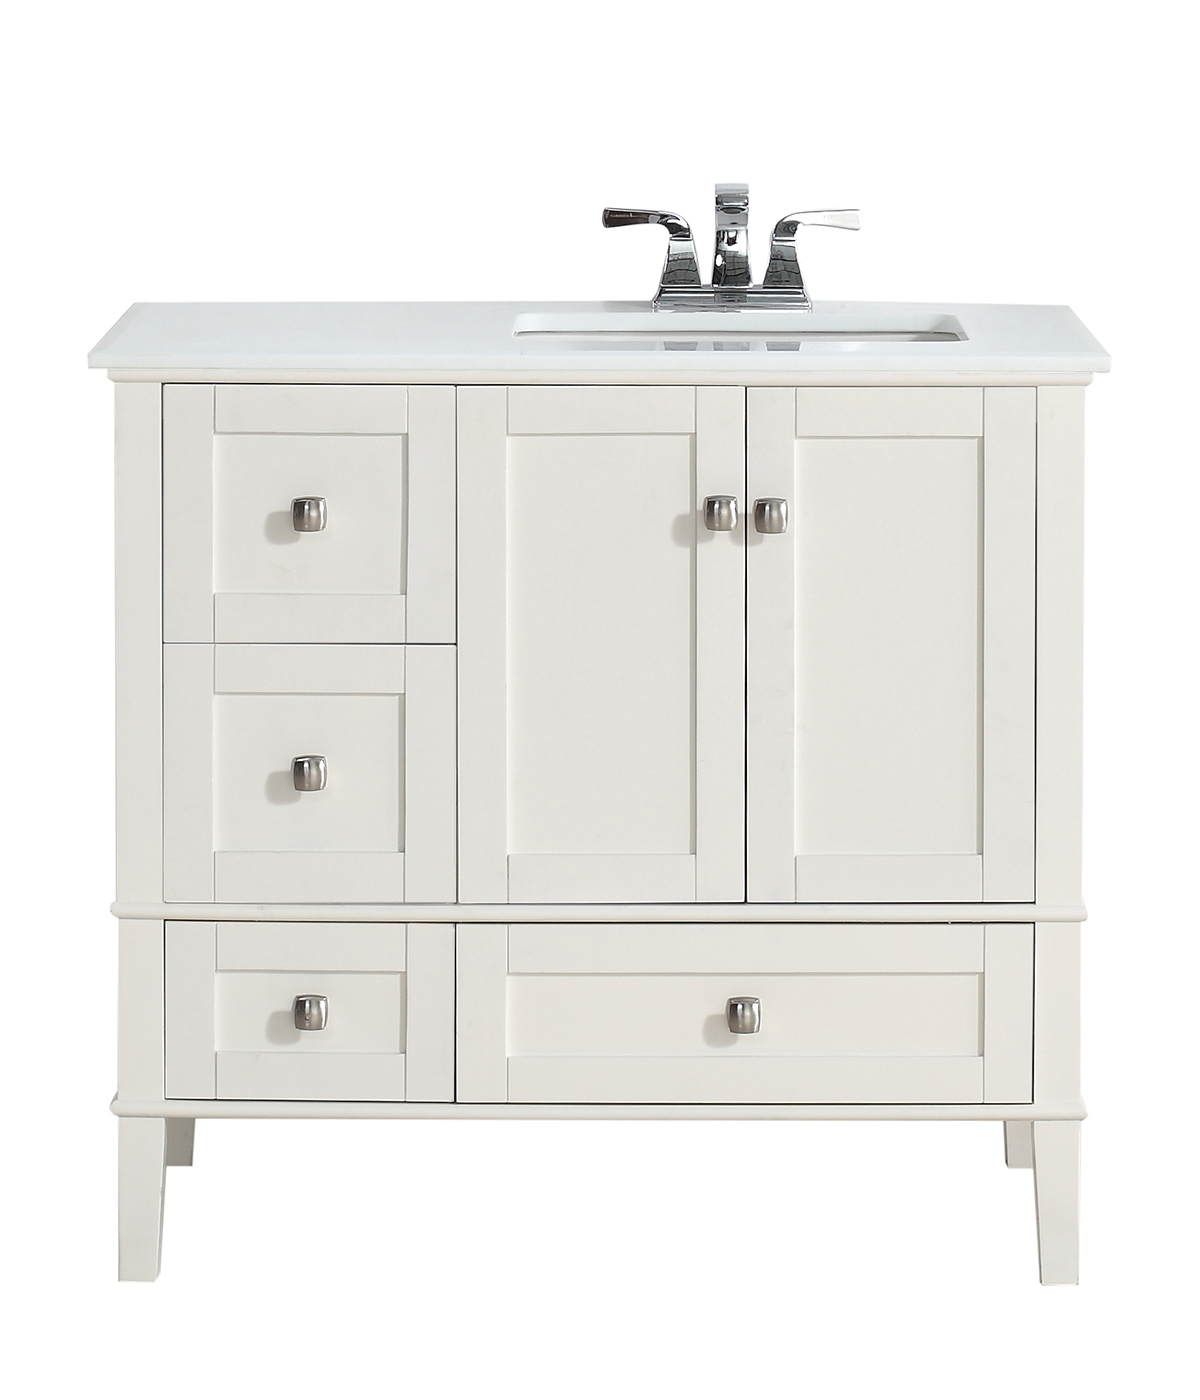 36 Bathroom Vanity With Top And Sink